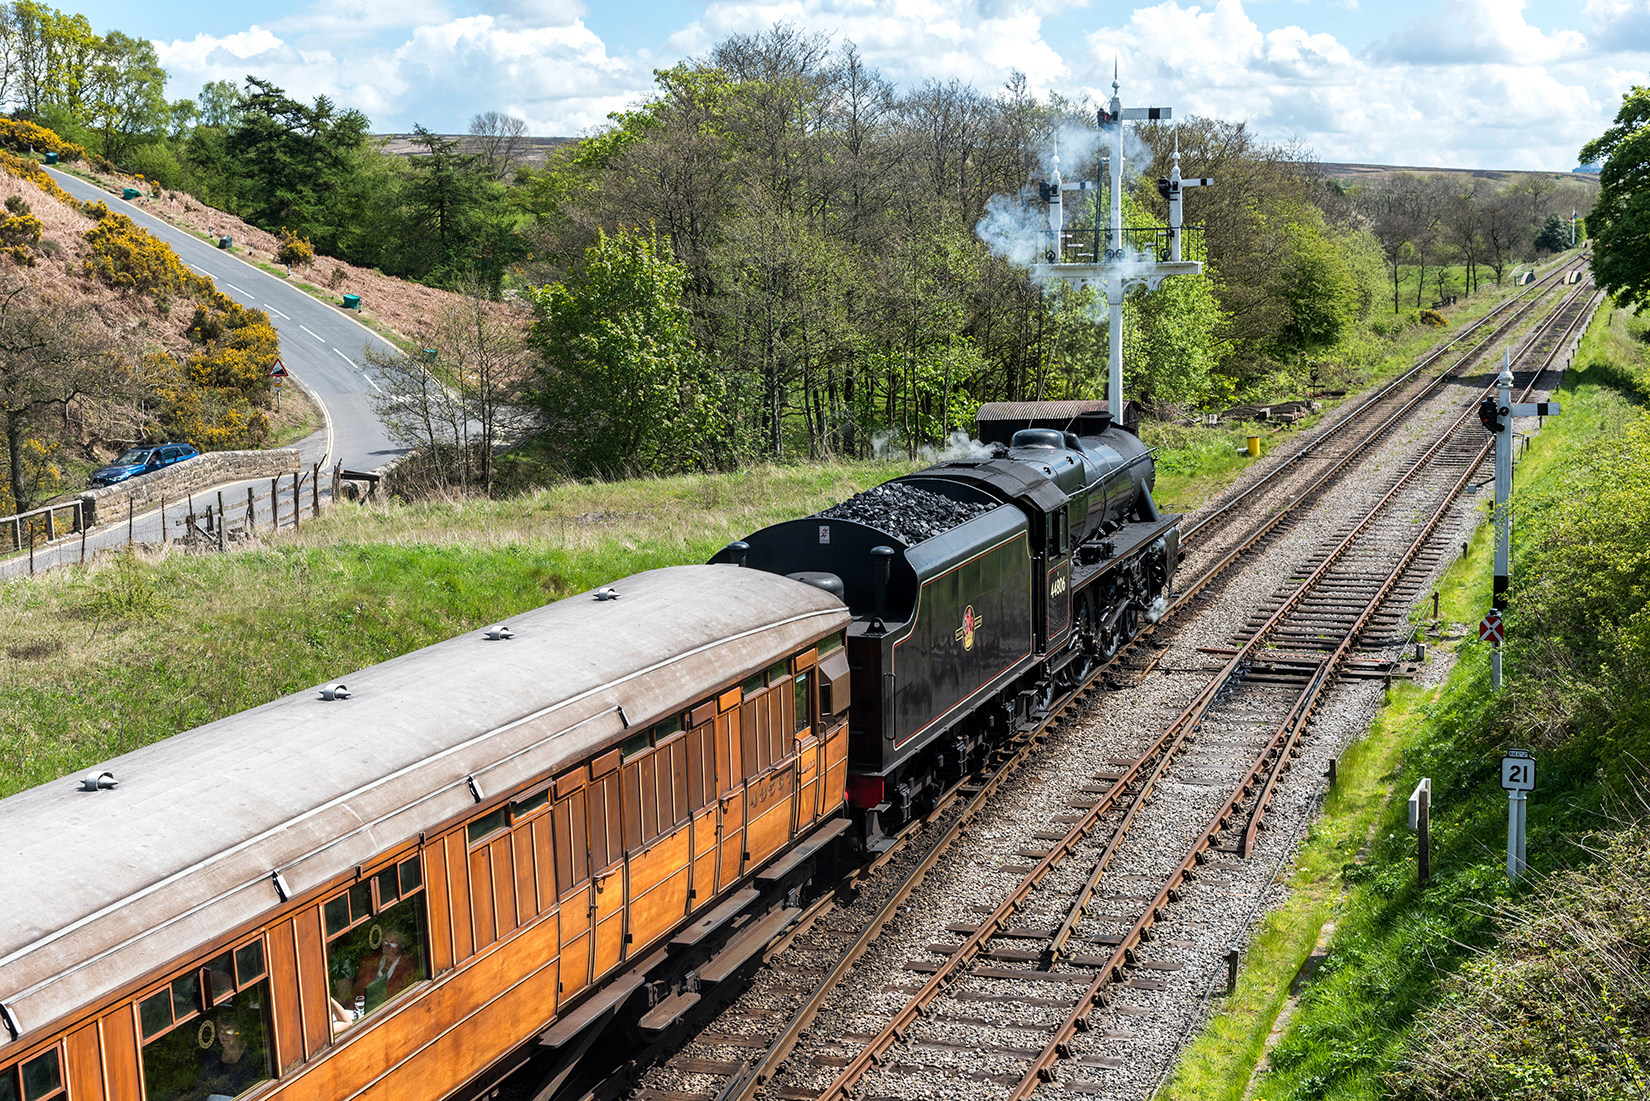 44806 heads out of Goathland hauling ex-LNER 'teak' coaches